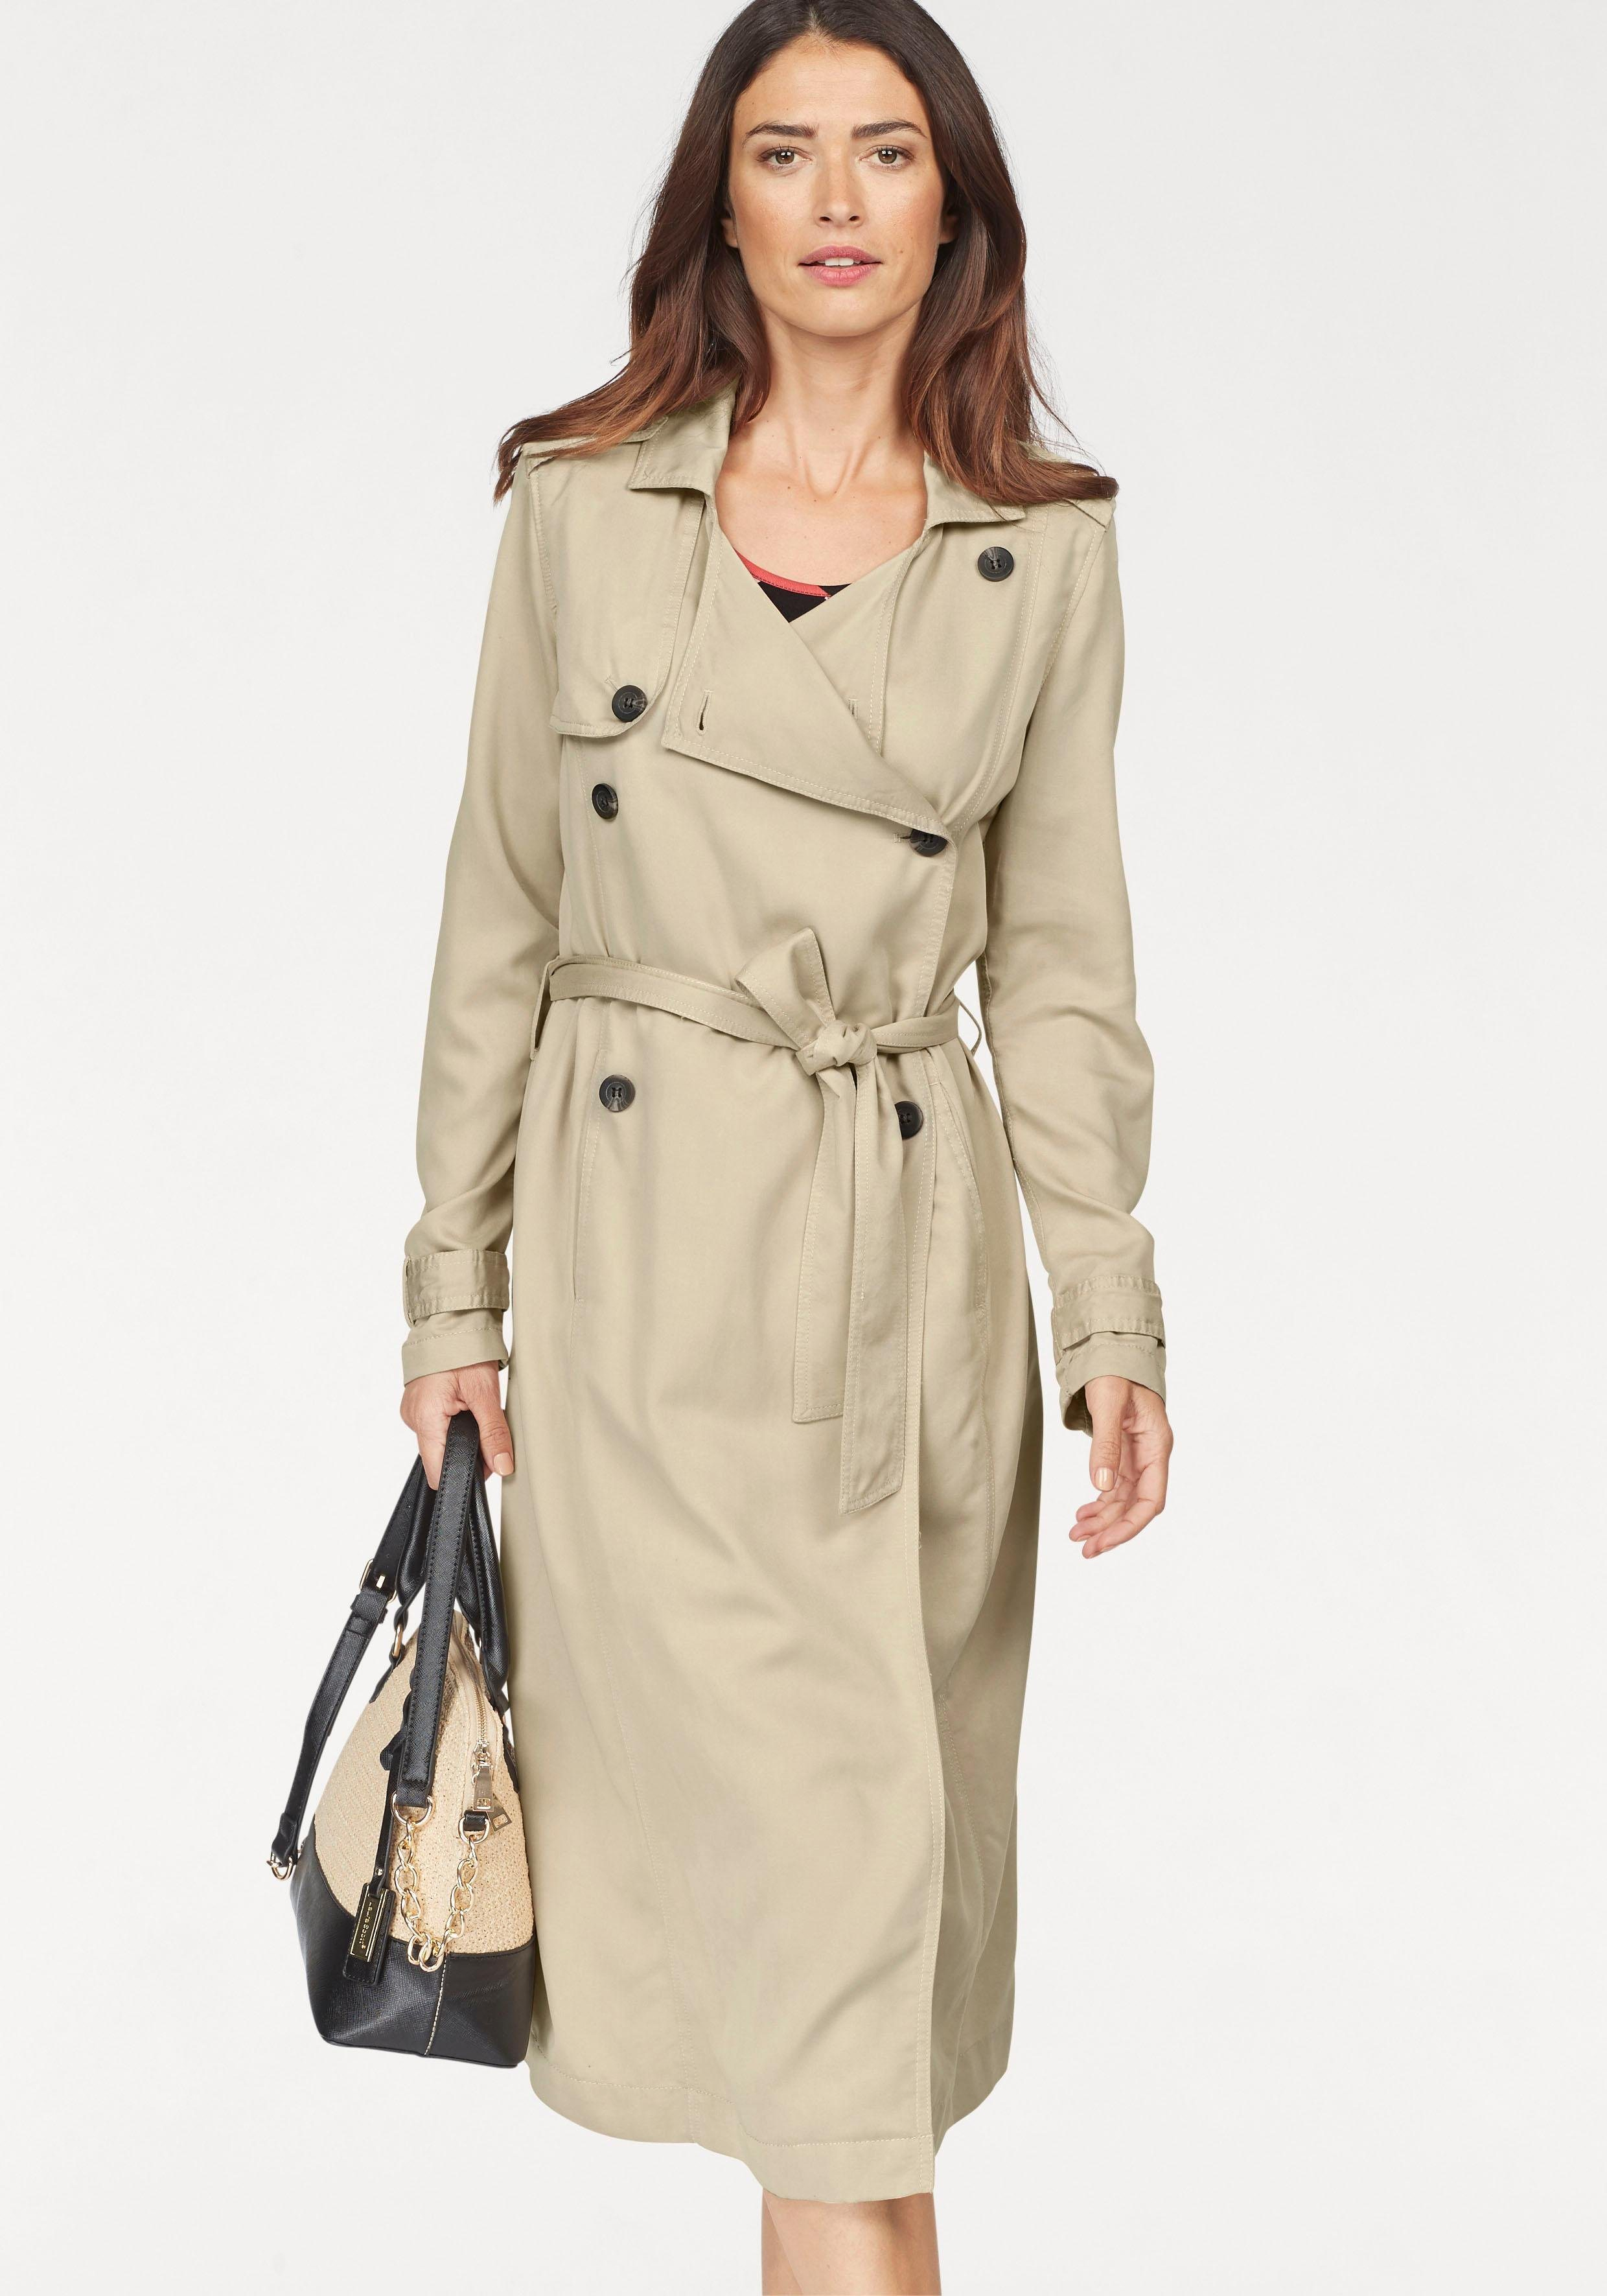 Laura Scott Trenchcoat in weich fallender Longform | Bekleidung > Mäntel > Trenchcoats | Laura Scott